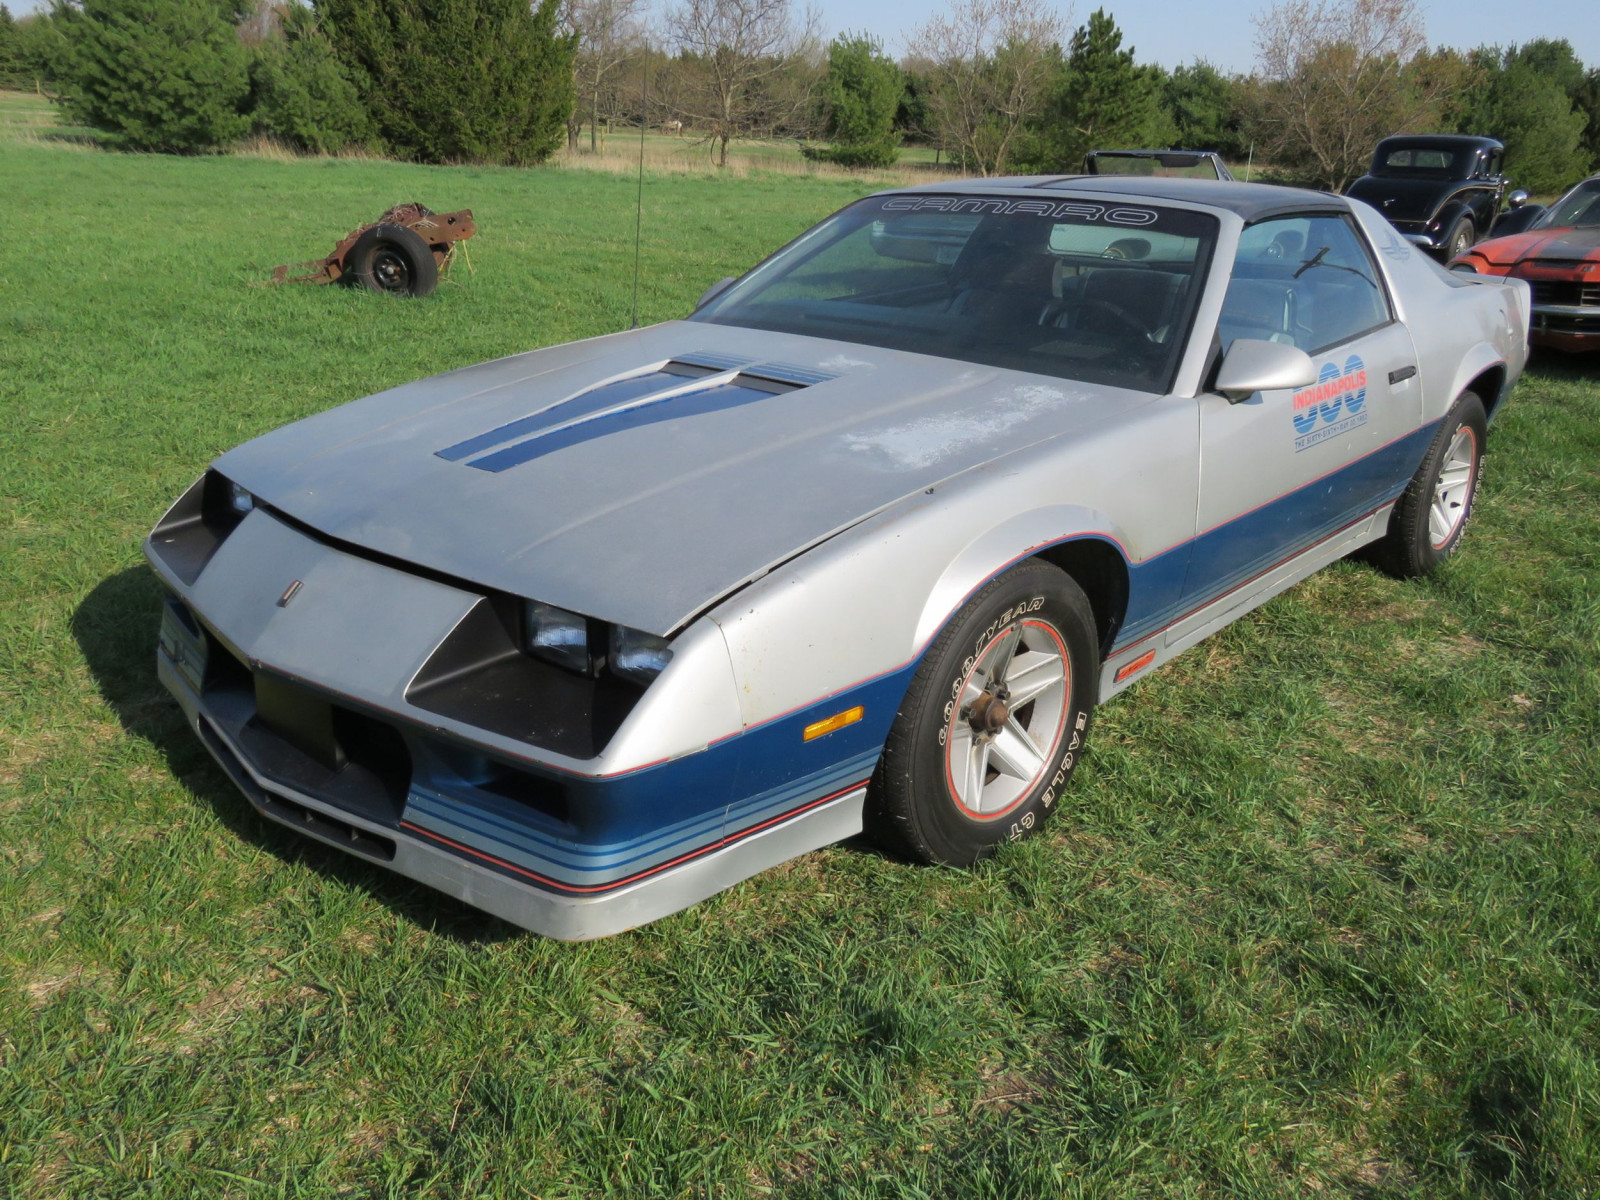 1982 Chevrolet Camaro Indianpolis 500 Edition Pace Car - Image 6